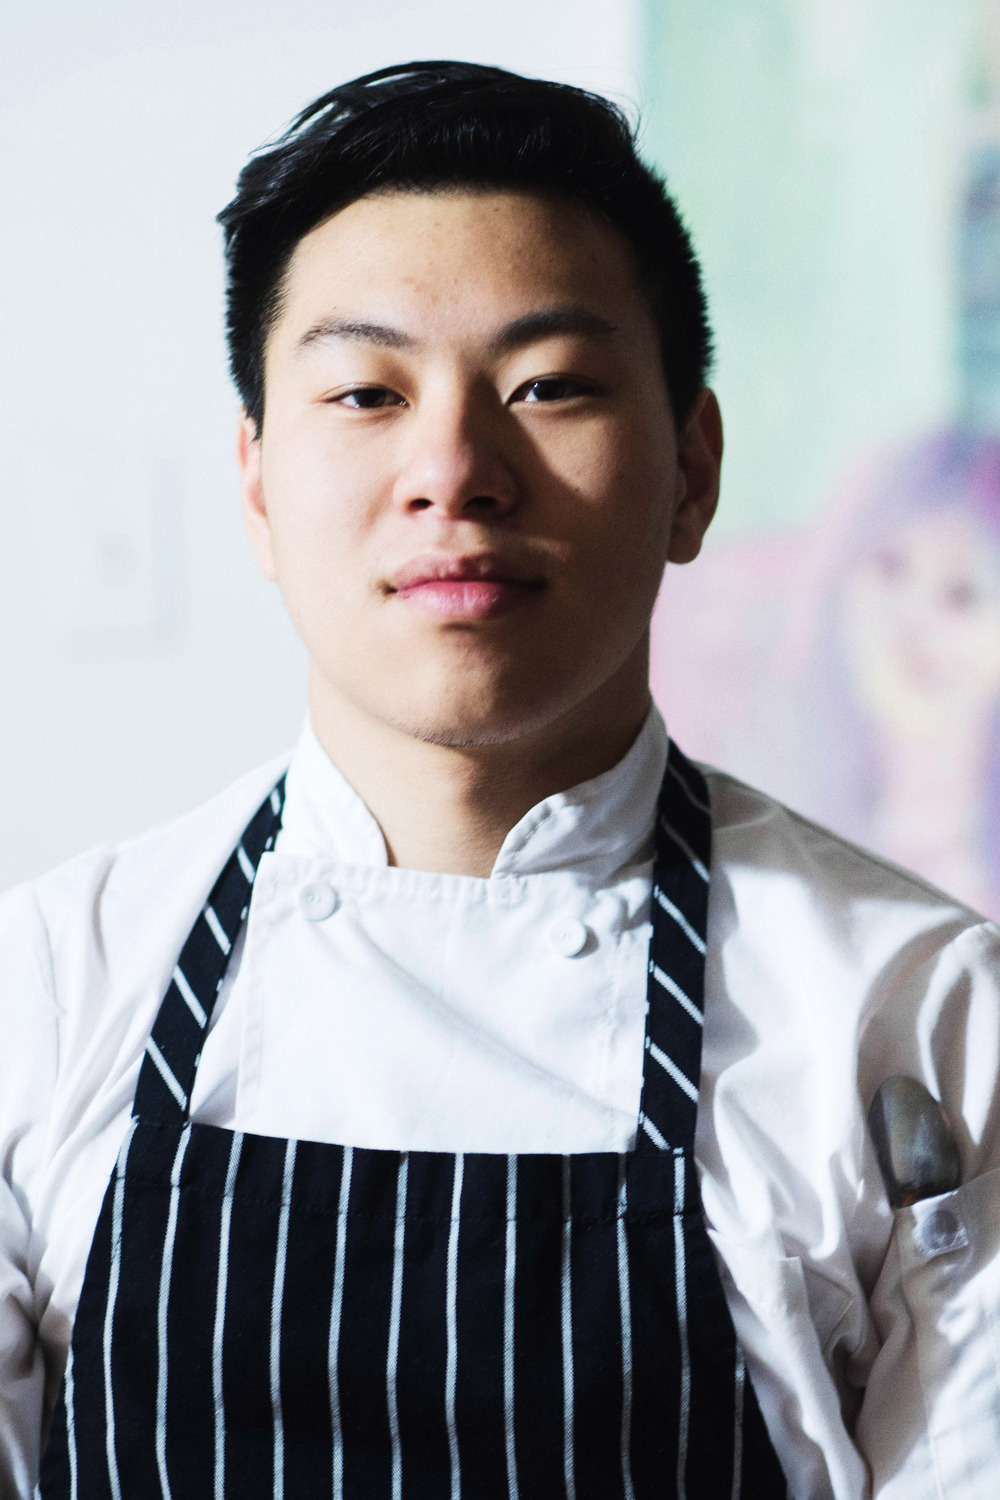 Lucas Sin, culinary: Lucas grew up in Hong Kong, apprenticed in kitchens in Japan, Hong Kong and the US; opened nine student-run restaurants; and received a BA at Yale. He's written for Lucky Peach, Cleaver Quarterly, and China Hands.